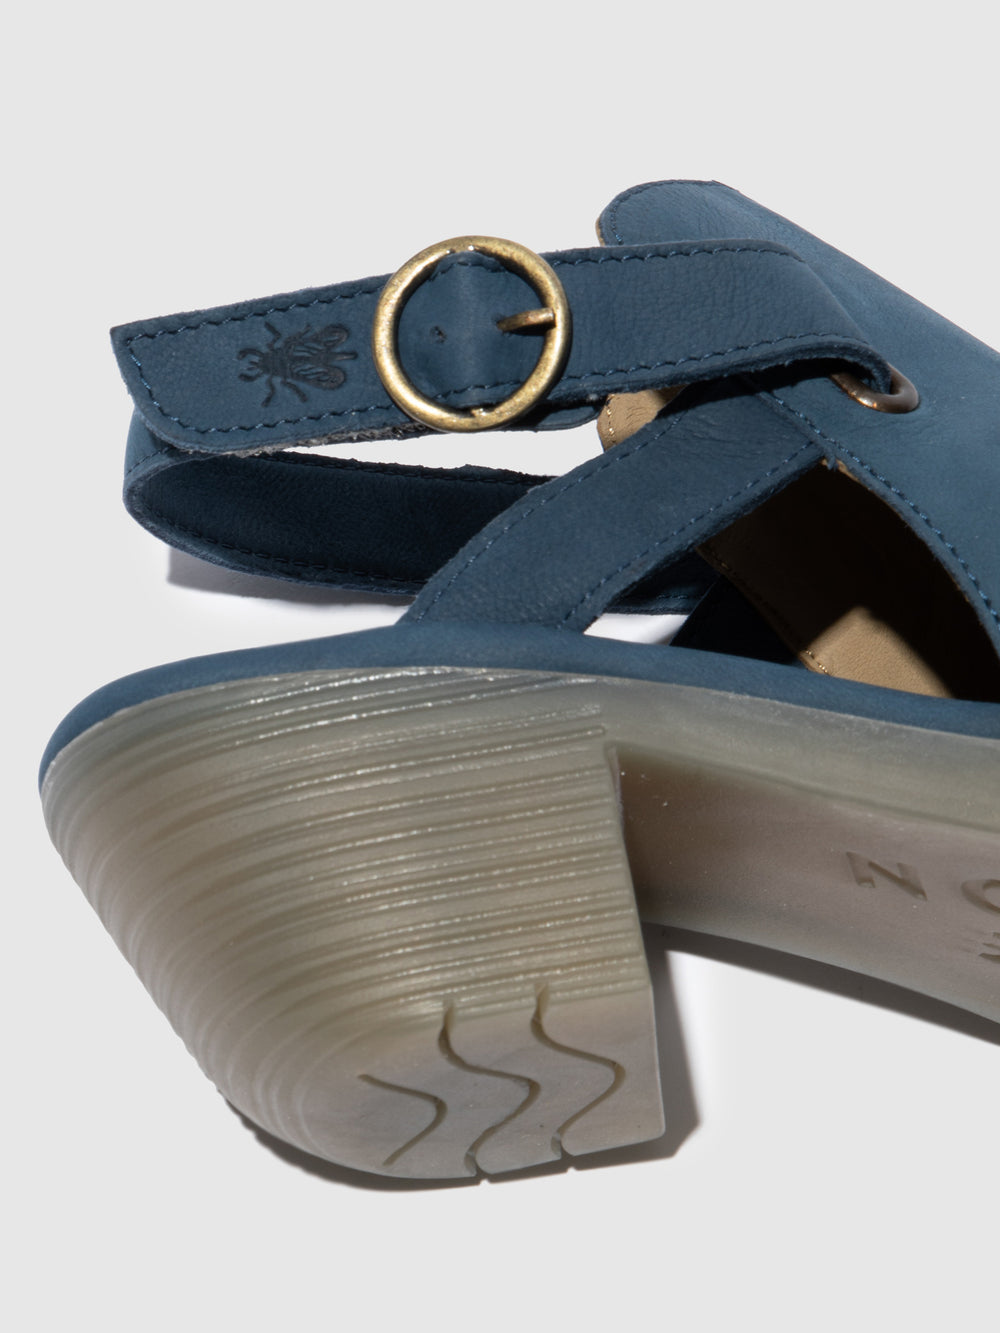 Velcro Sandals WENA137FLY BLUE